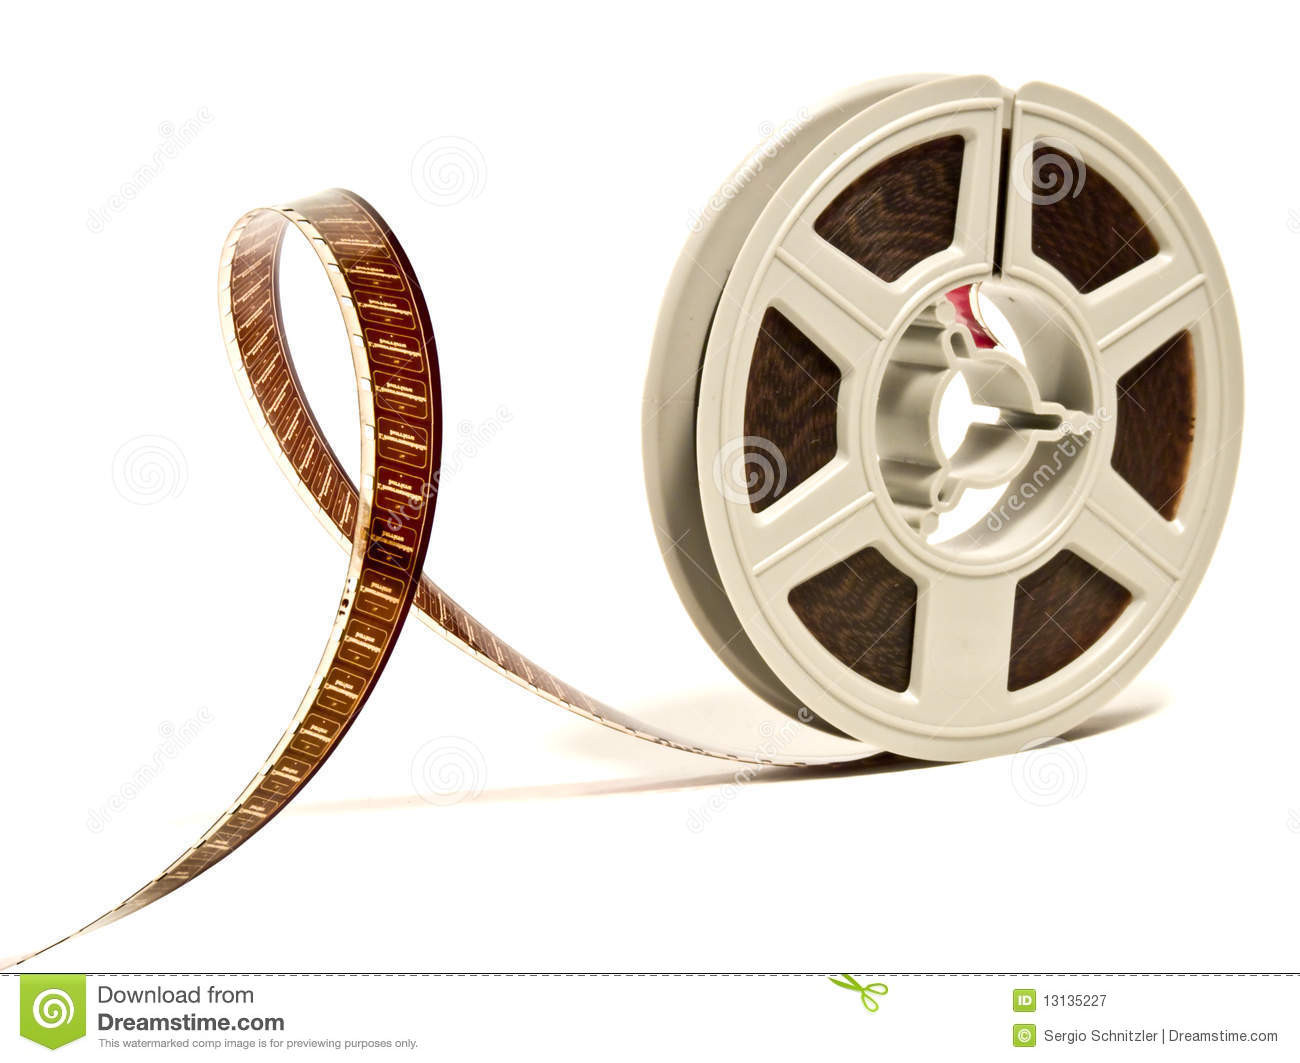 Super 8 color film reel stock image image of celluloid 13135227 royalty free stock photo altavistaventures